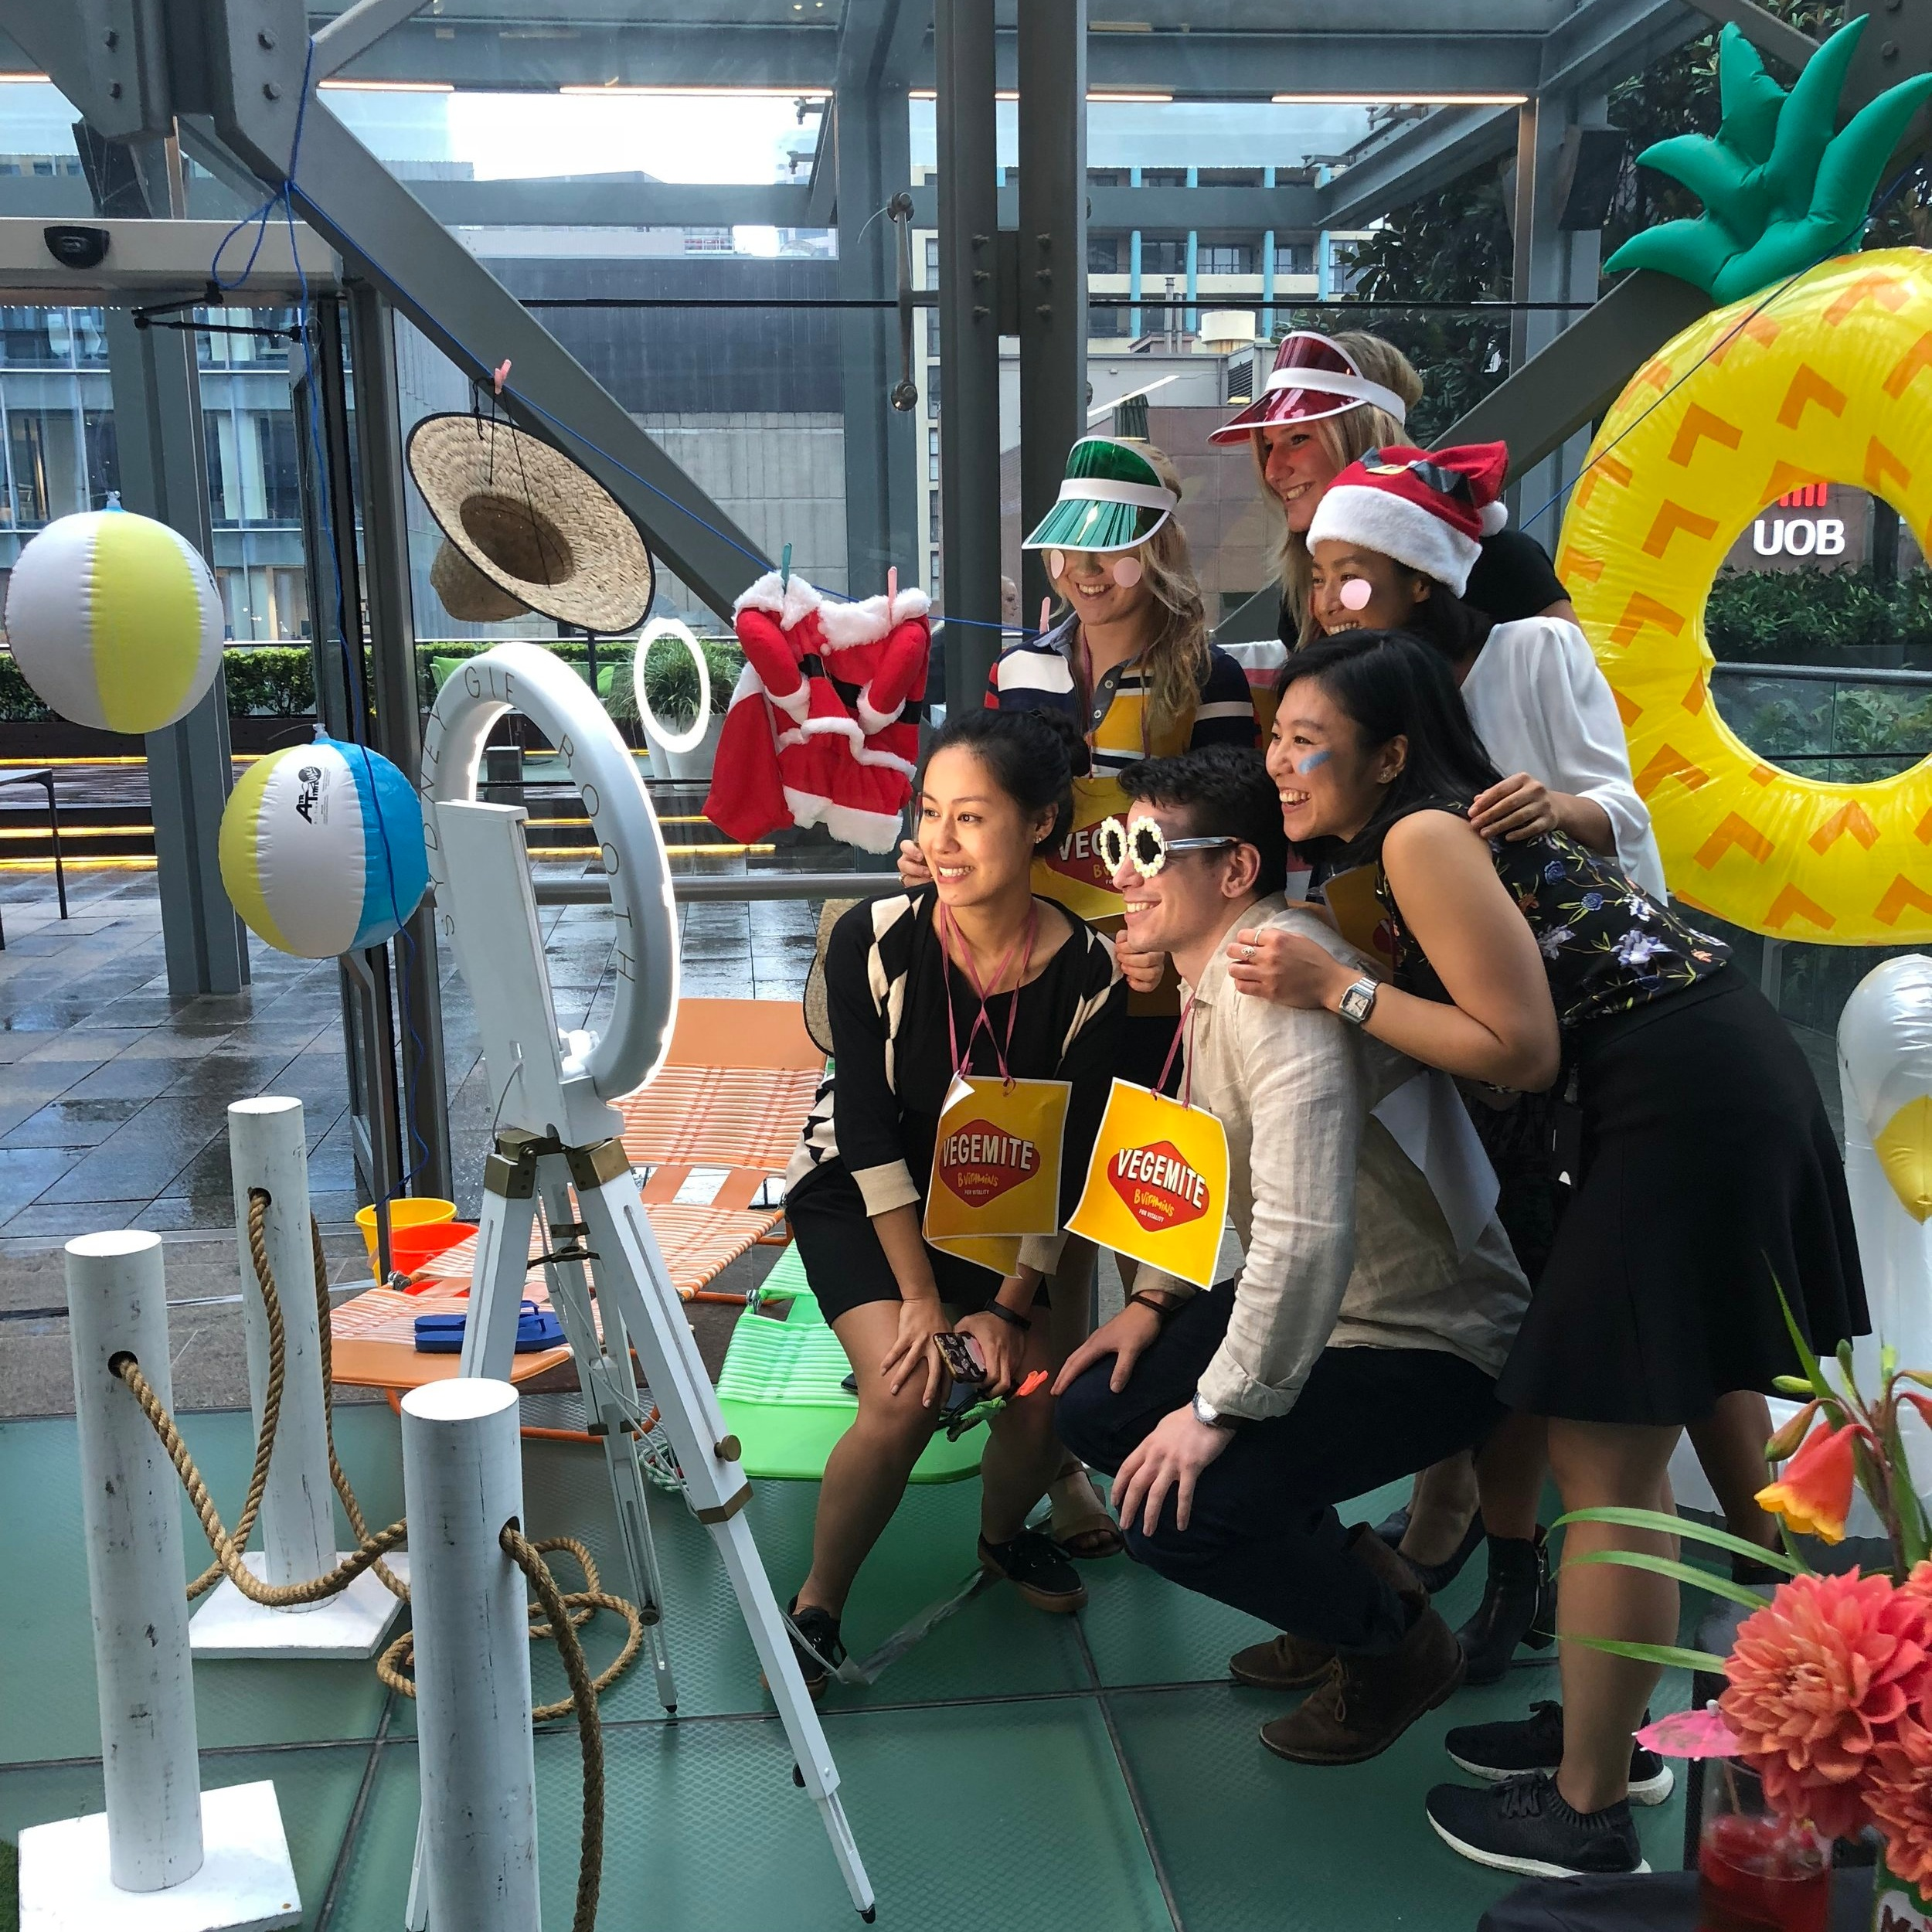 Ashurst Christmas Party     Venue: Ashurst Terrace, Sydney    SGB Highlights: The combo of santa outfits and pineapples…